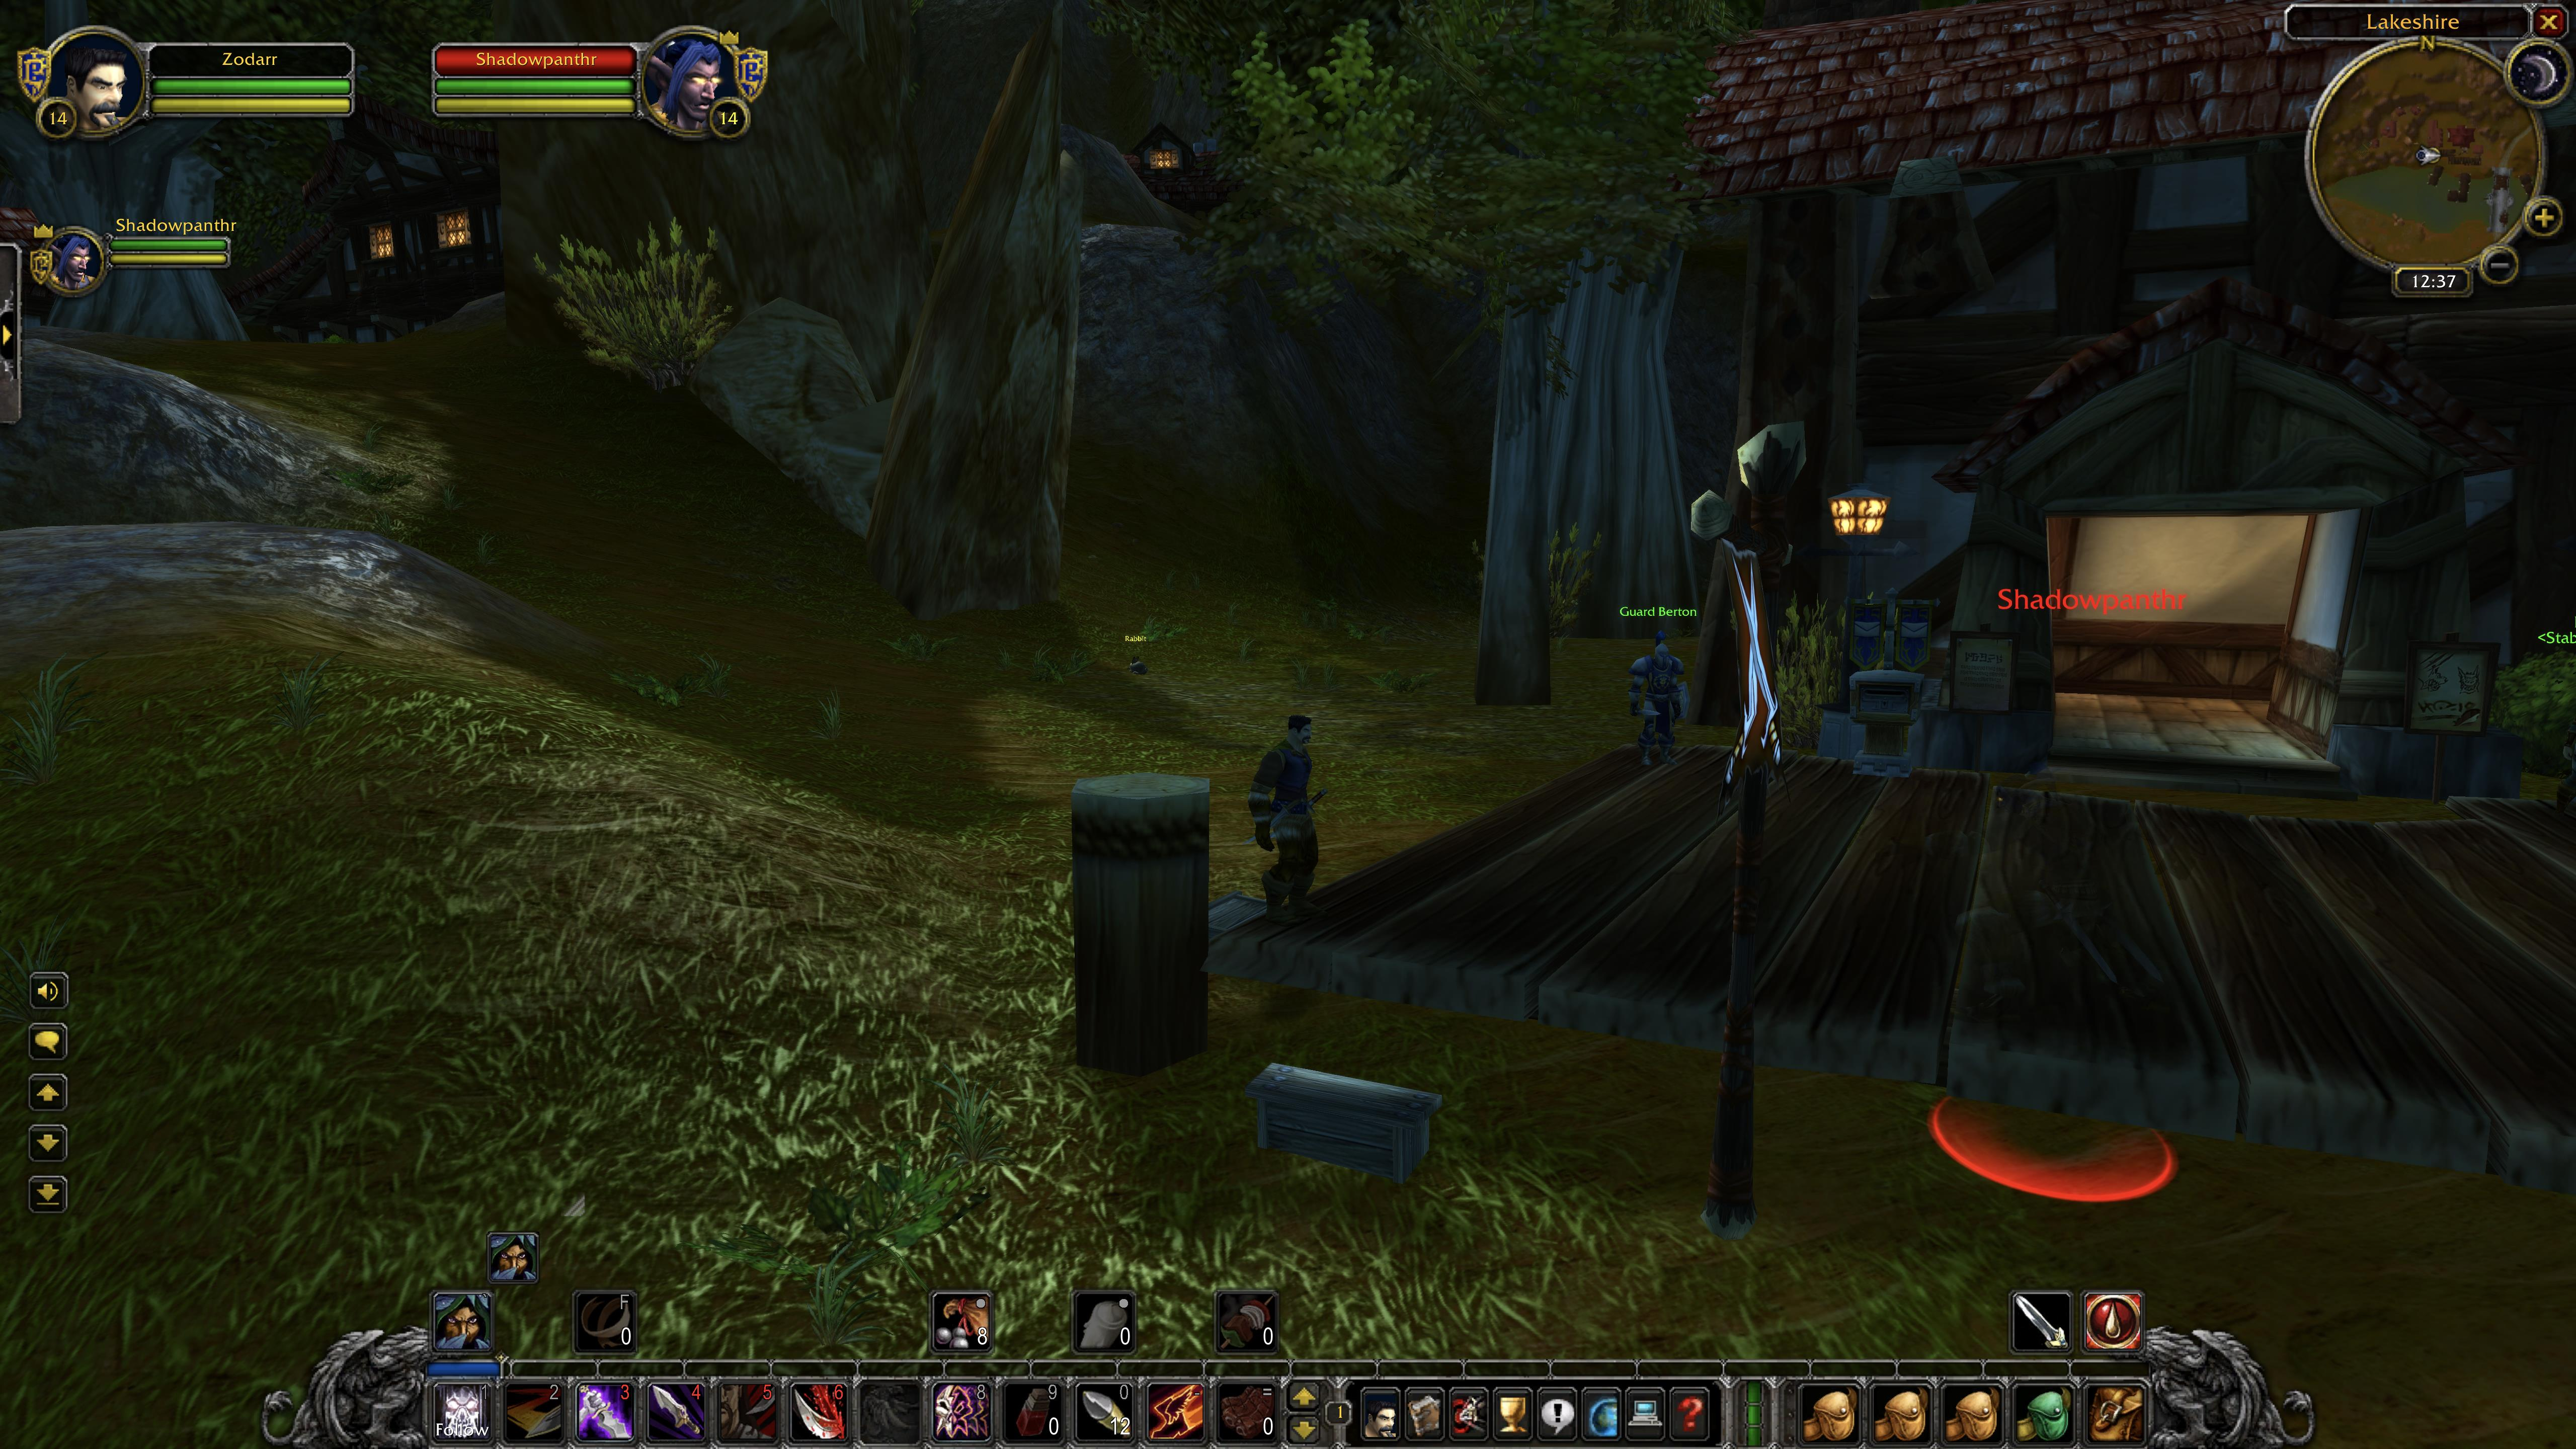 Night Elf Stealth - 1 MoD